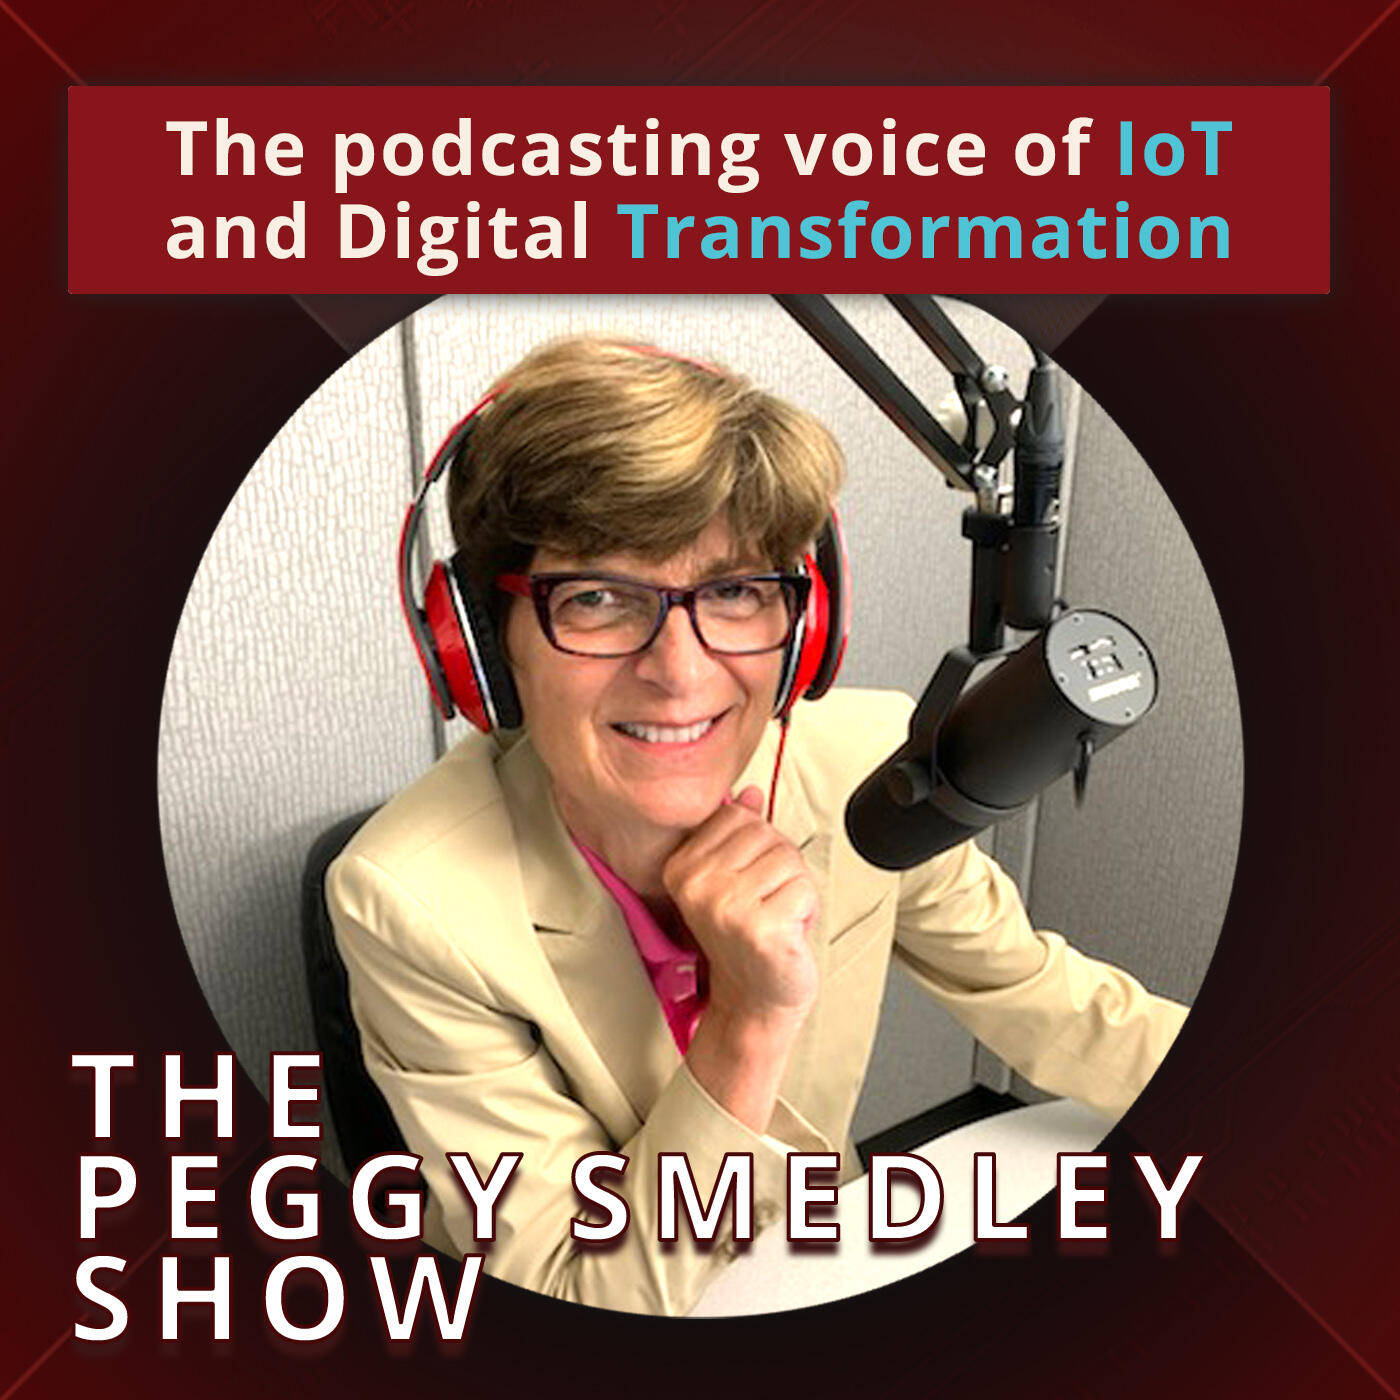 The Peggy Smedley Show podcast cover